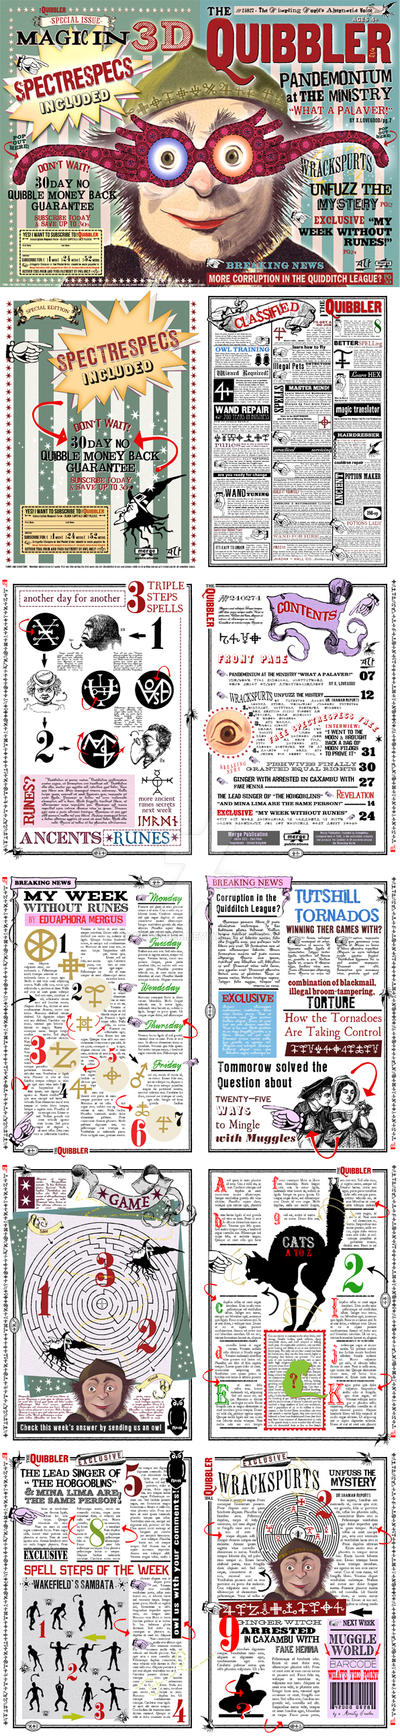 Exceptional image inside quibbler printable